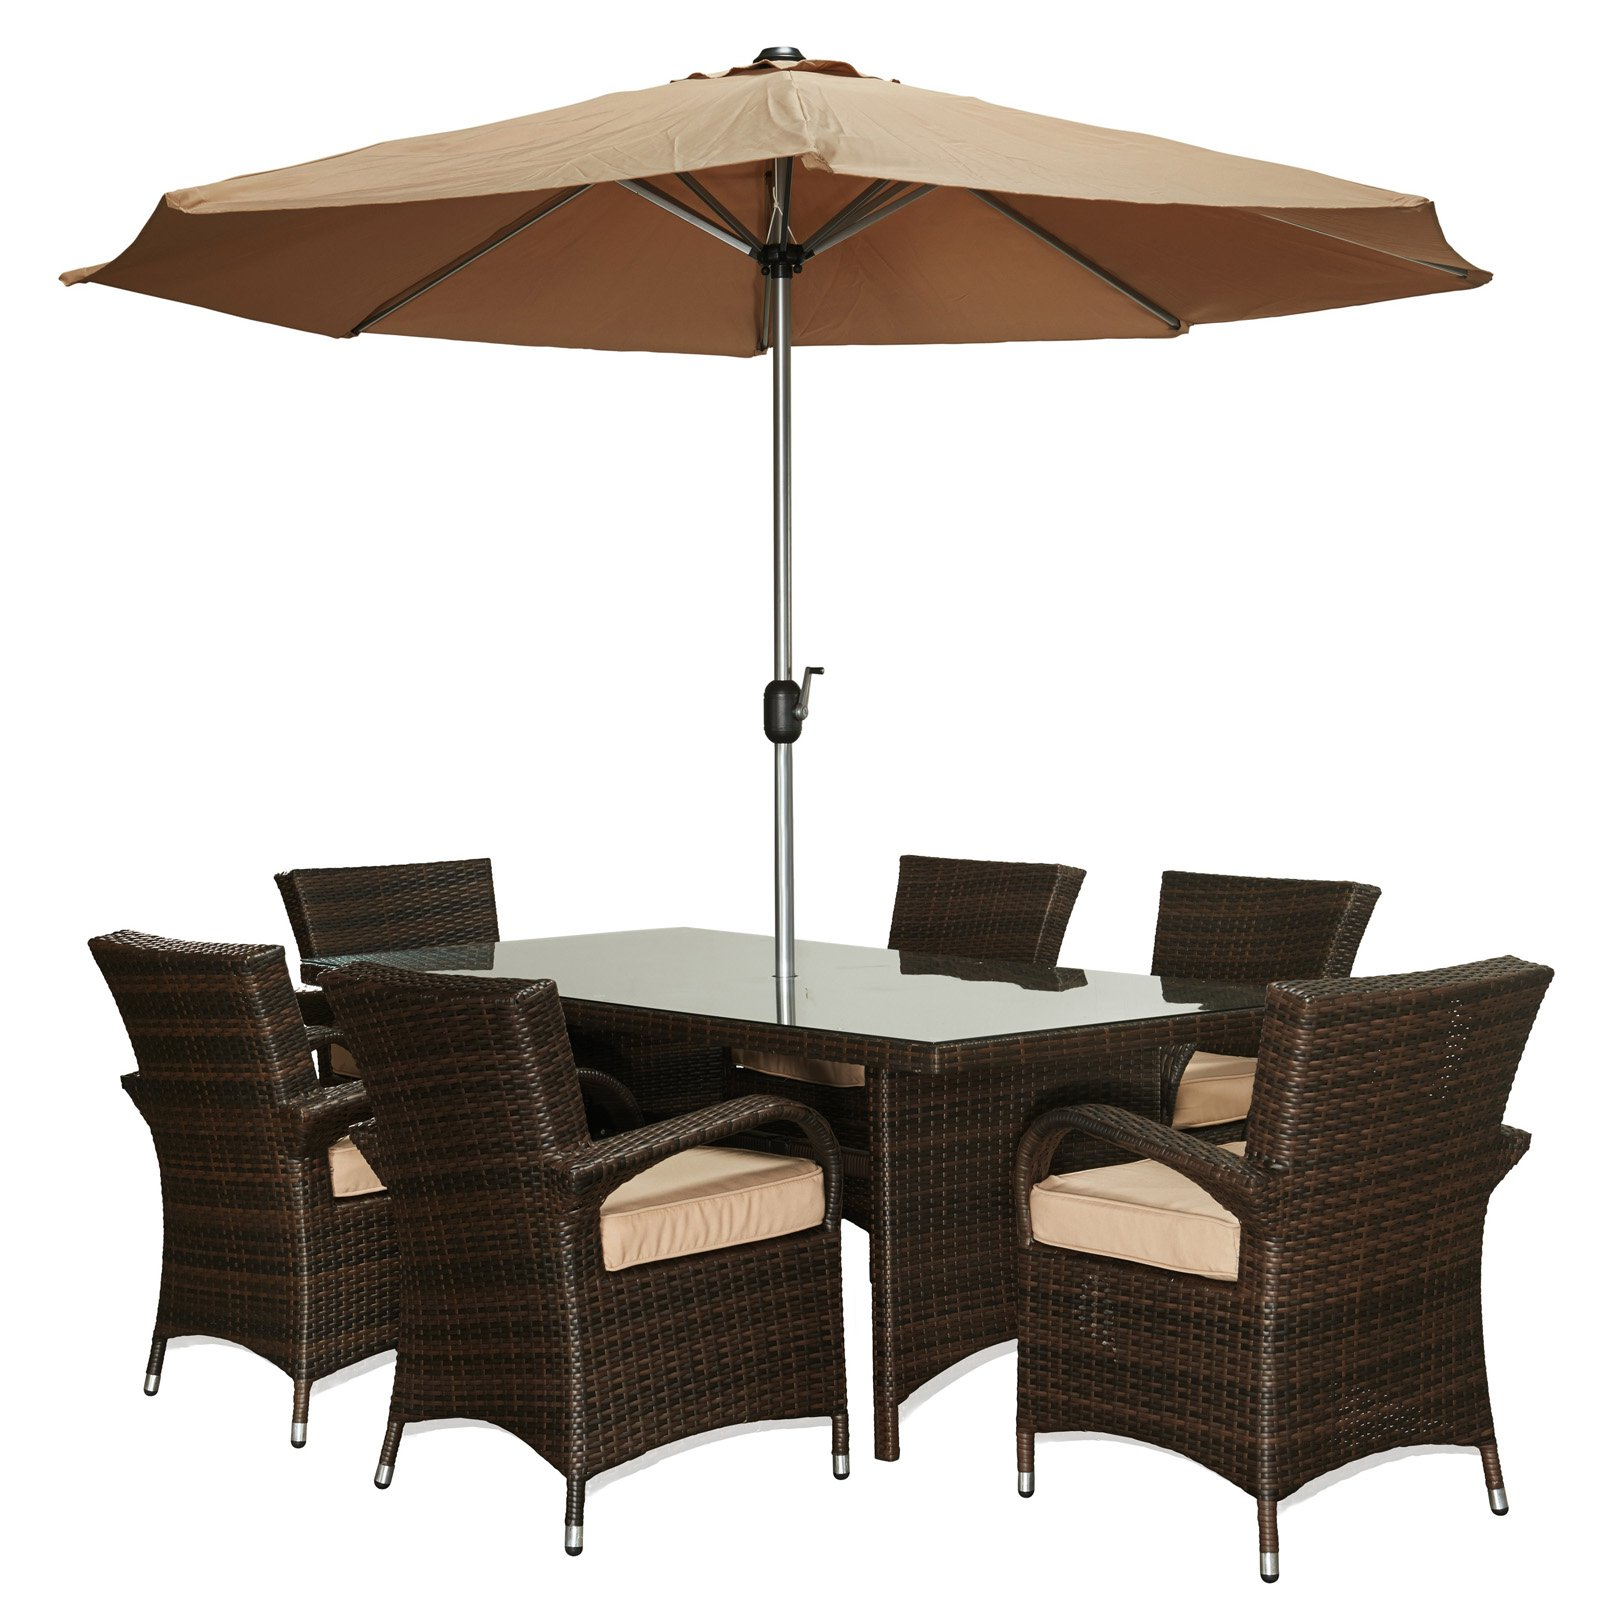 W Unlimited Crystal Collection 8 Piece Wicker Outdoor Patio Dining